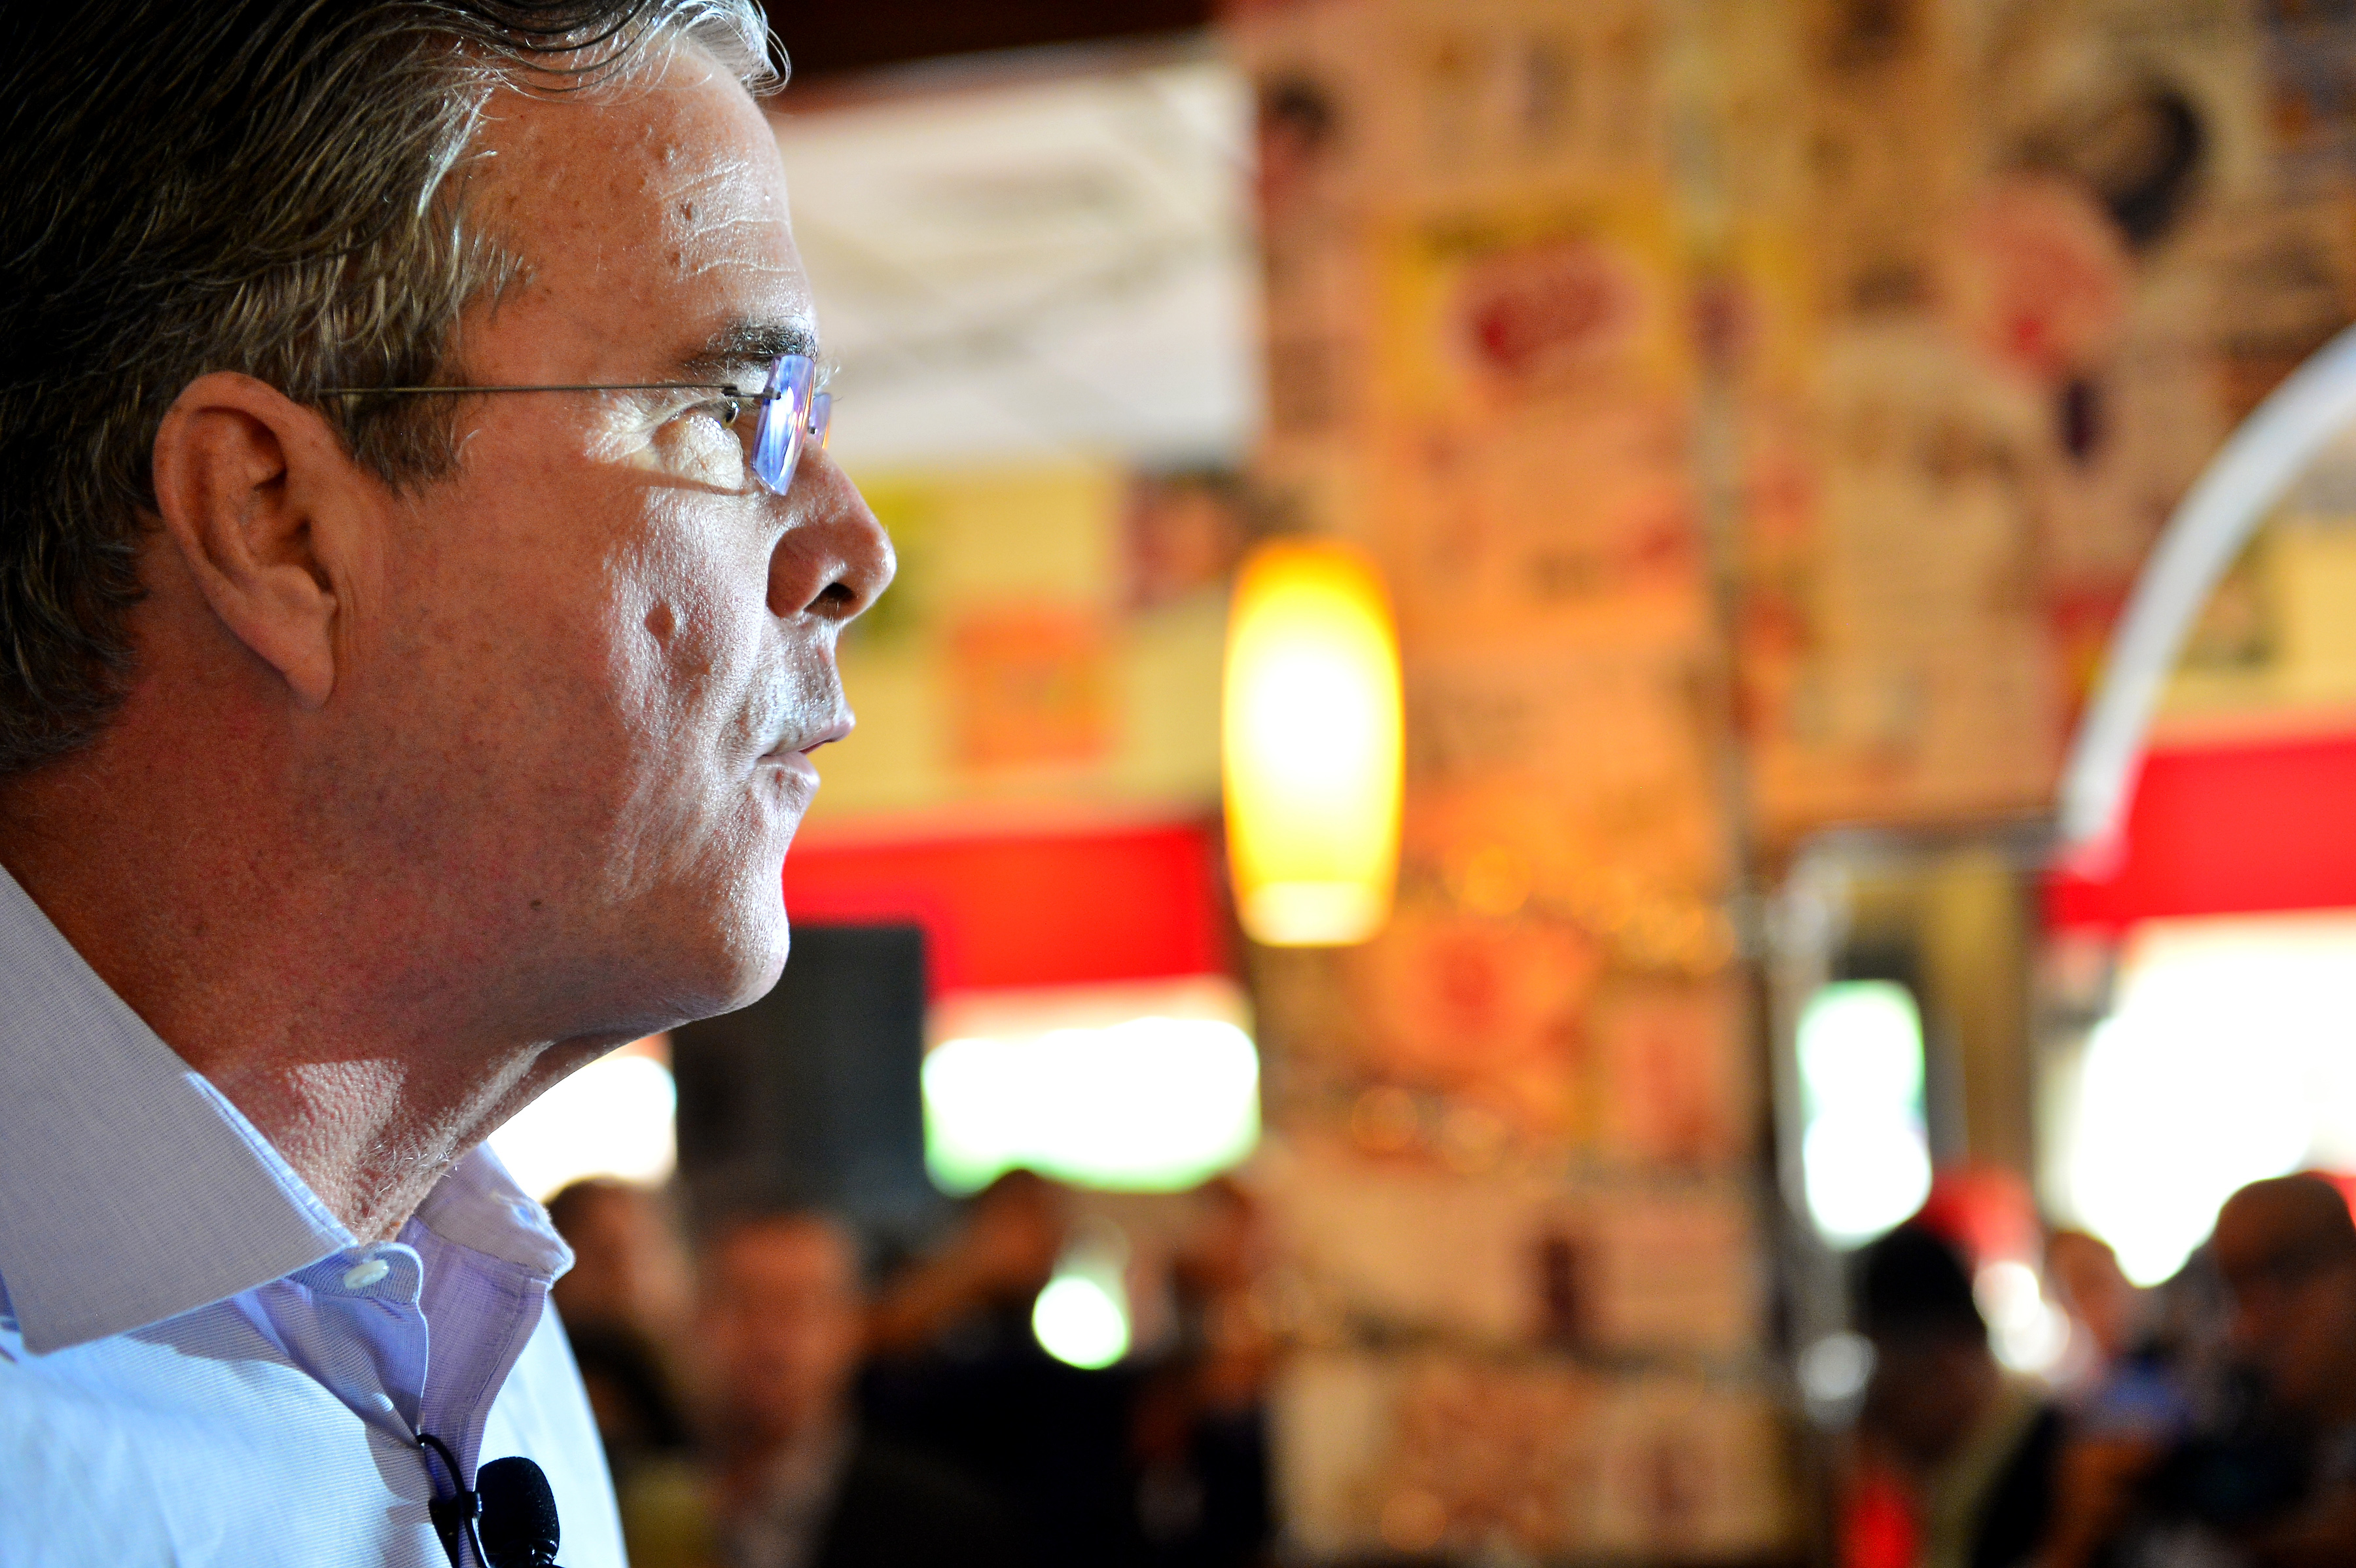 Republican presidential candidate and former Florida Governor Jeb Bush holds a meet and greet at Chico's Restaurant on December 28, 2015 in Hialeah, Florida. Mr. Bush continues to campaign for his parties' nomination as the presidential candidate. on December 28, 2015 in Miami, Florida.